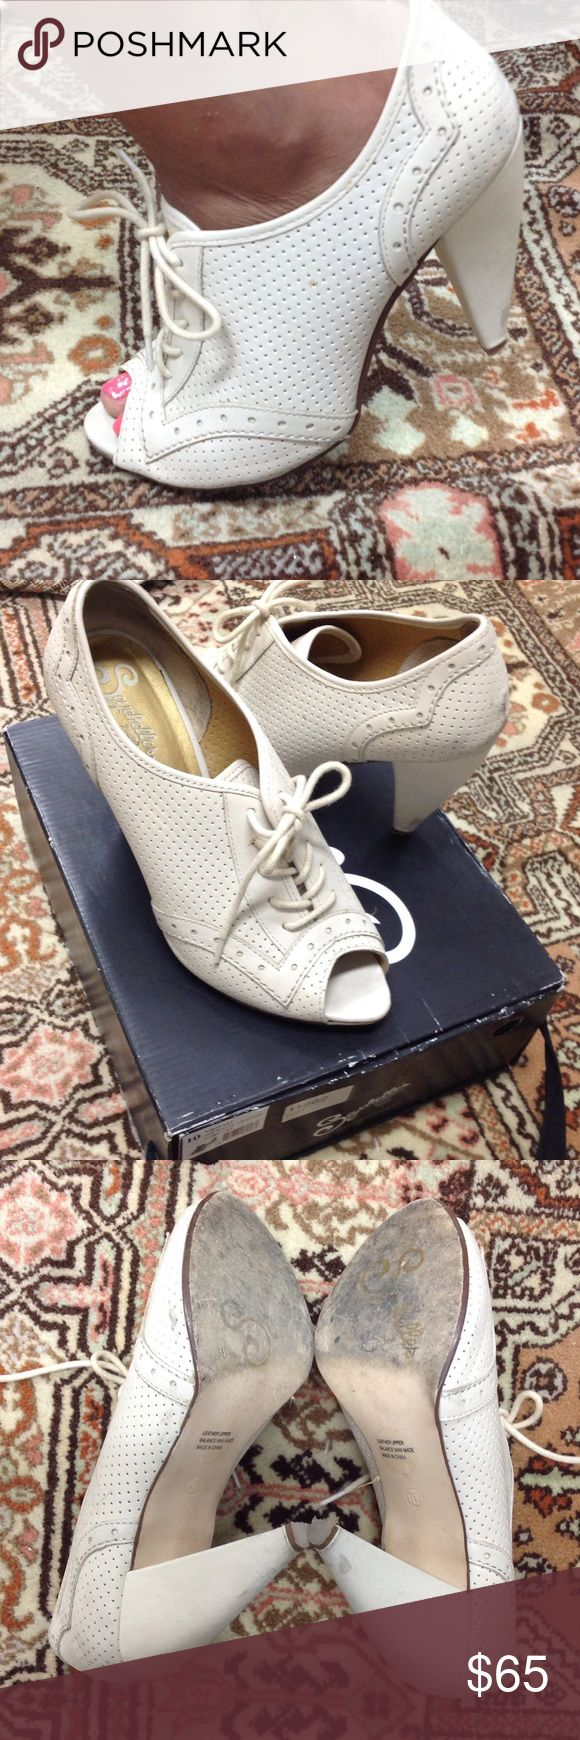 Seychelles off white leather pep toe bootie Seychelles off white leather Dorothy. Some wear but in excellent condition. Box included. Seychelles Shoes Ankle Boots & Booties